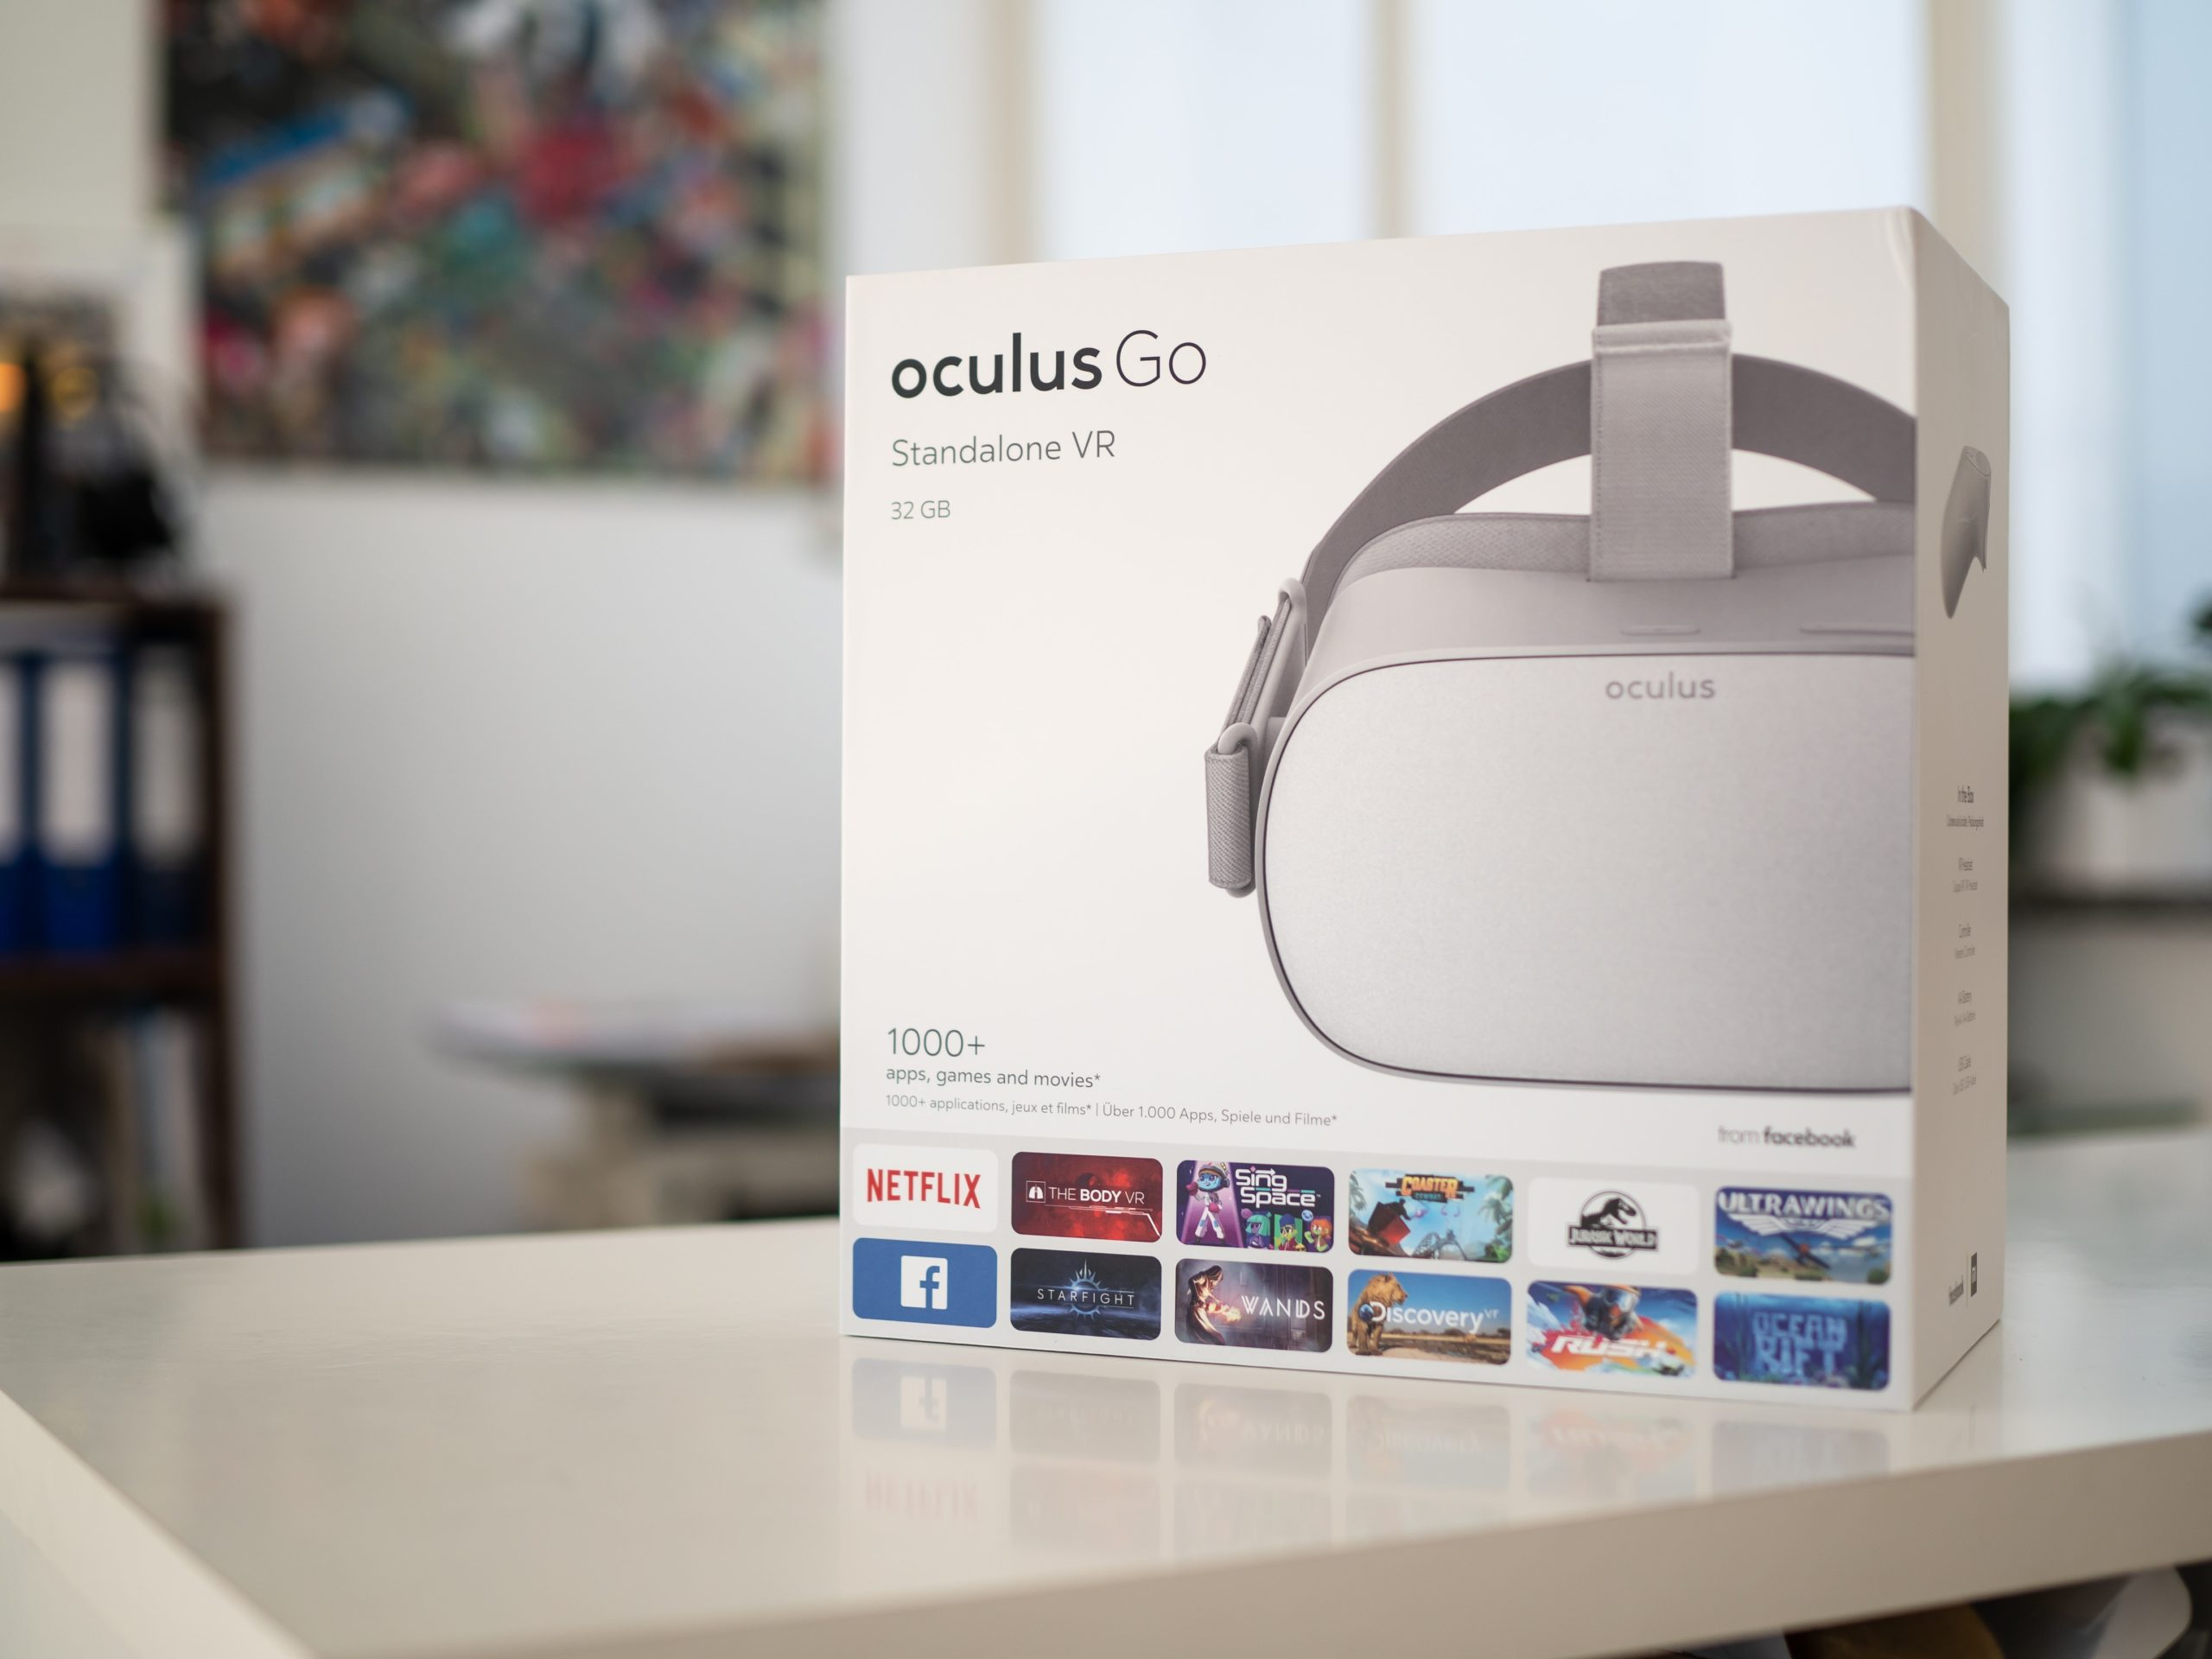 VR headset for virtual reality